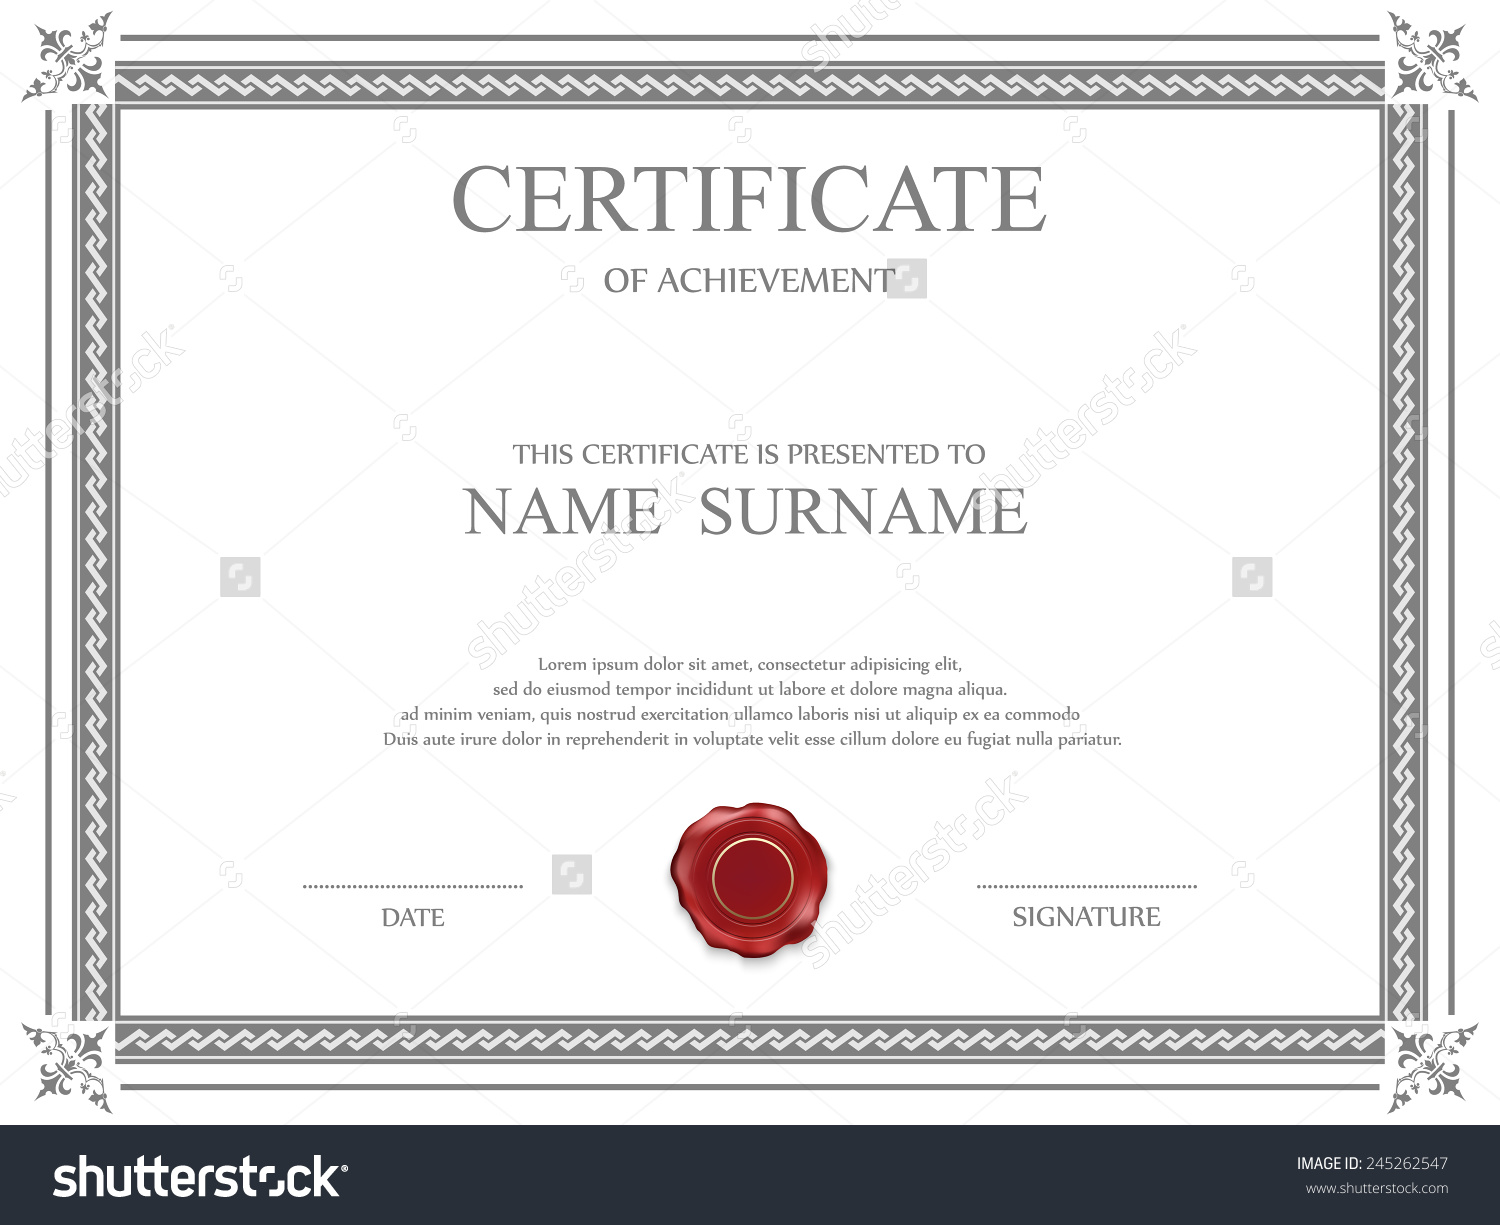 Template: Company Share Certificate Template South Africa